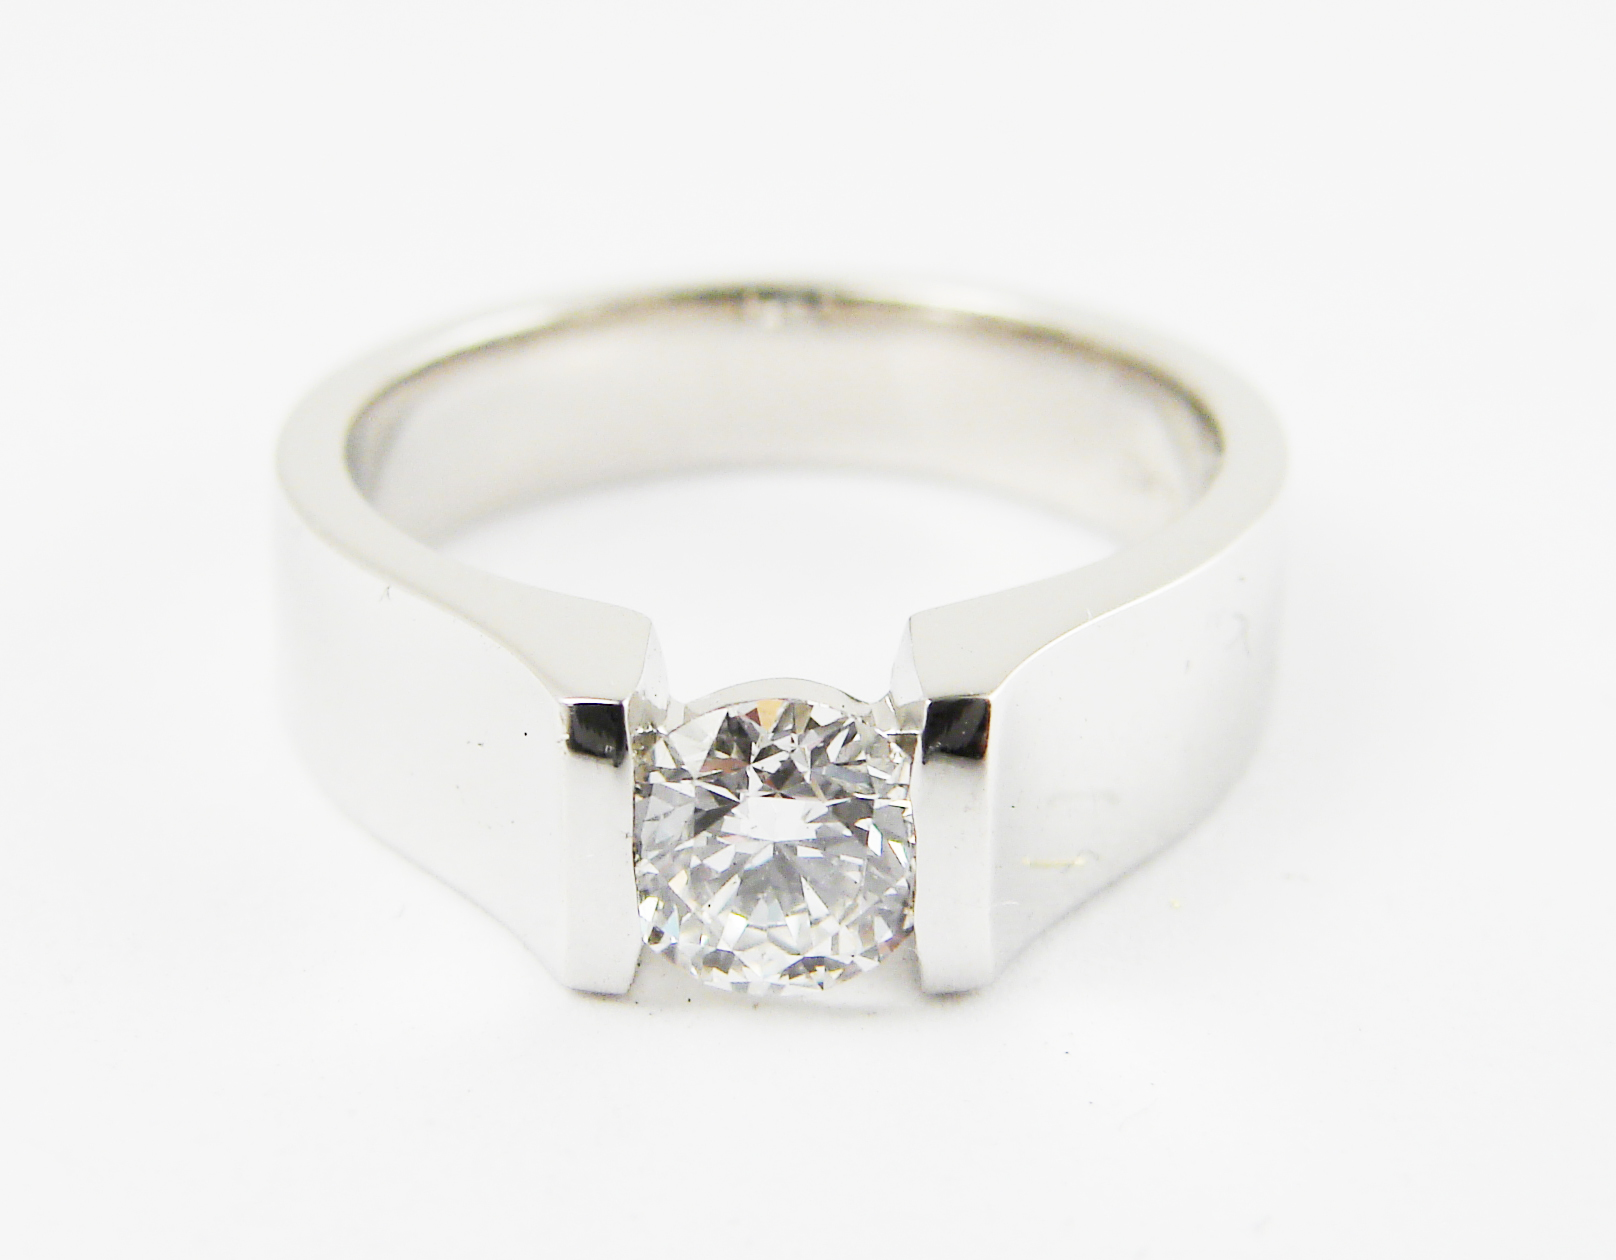 0.55ct round brilliant cut diamond tension set in a heavy platinum setting.  Starting at $6000 for this stone size andVVS-2 clarity F colour  Can be customizable with any stone, size, metal etc.